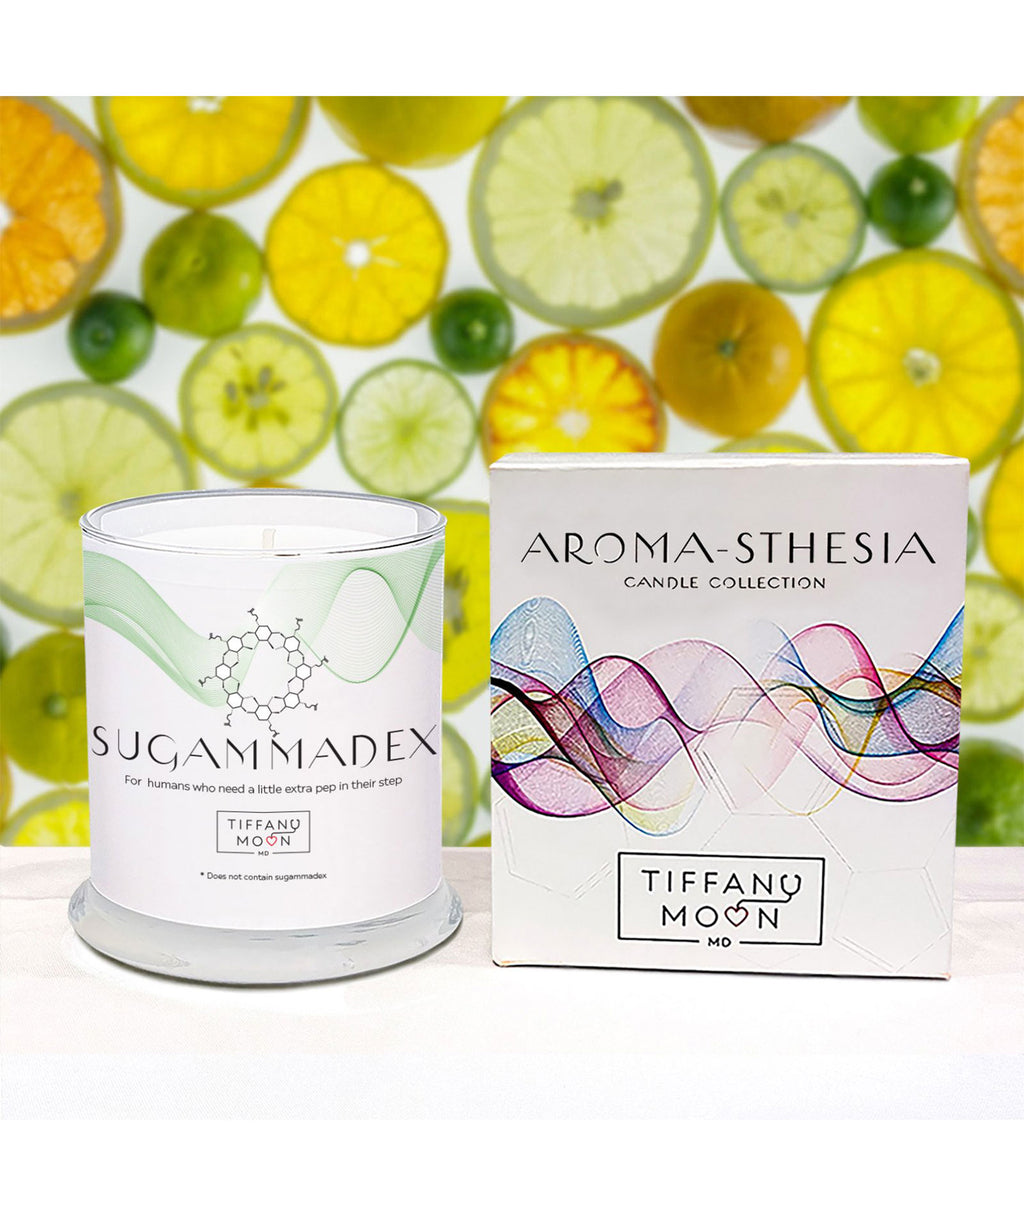 Aromasthesia Sugammadex Candle